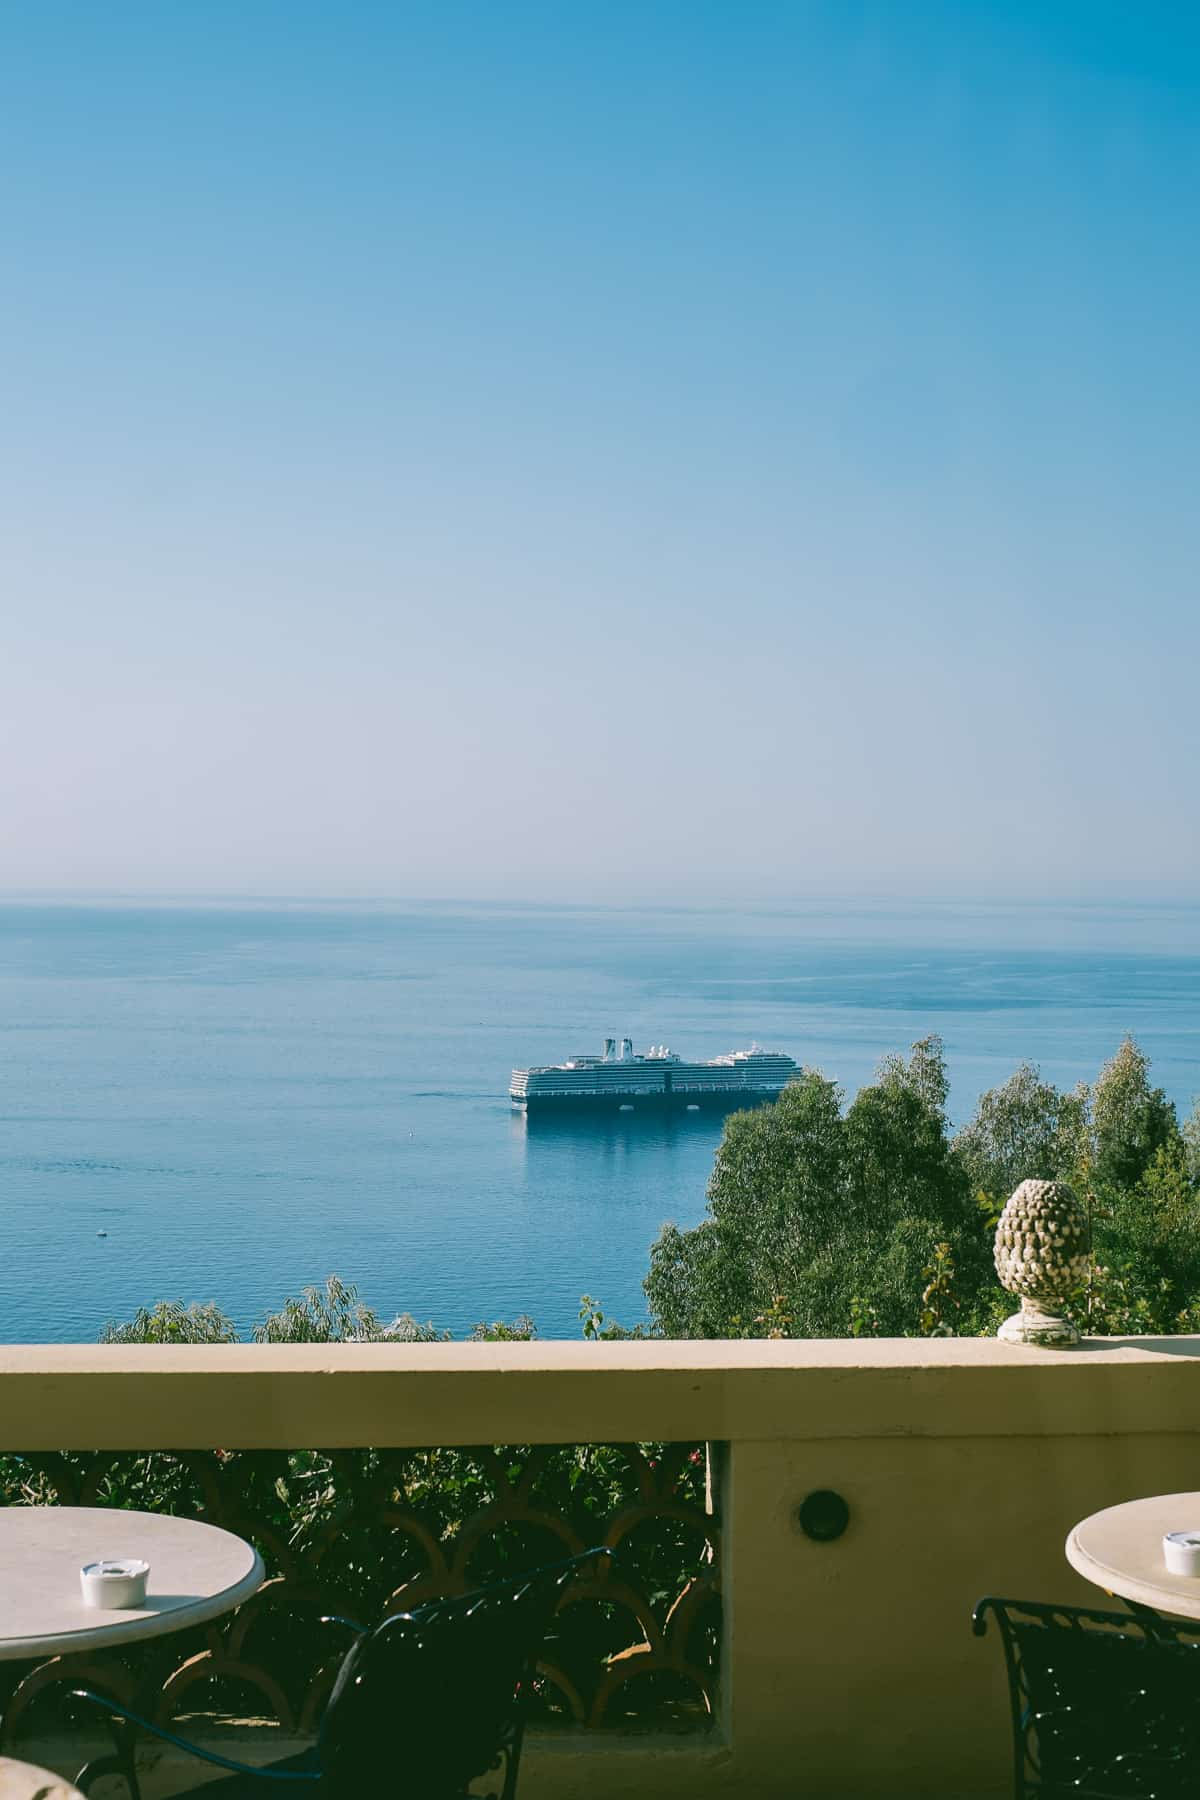 looking out into the sea from the balcony of old world hotel in Sicily